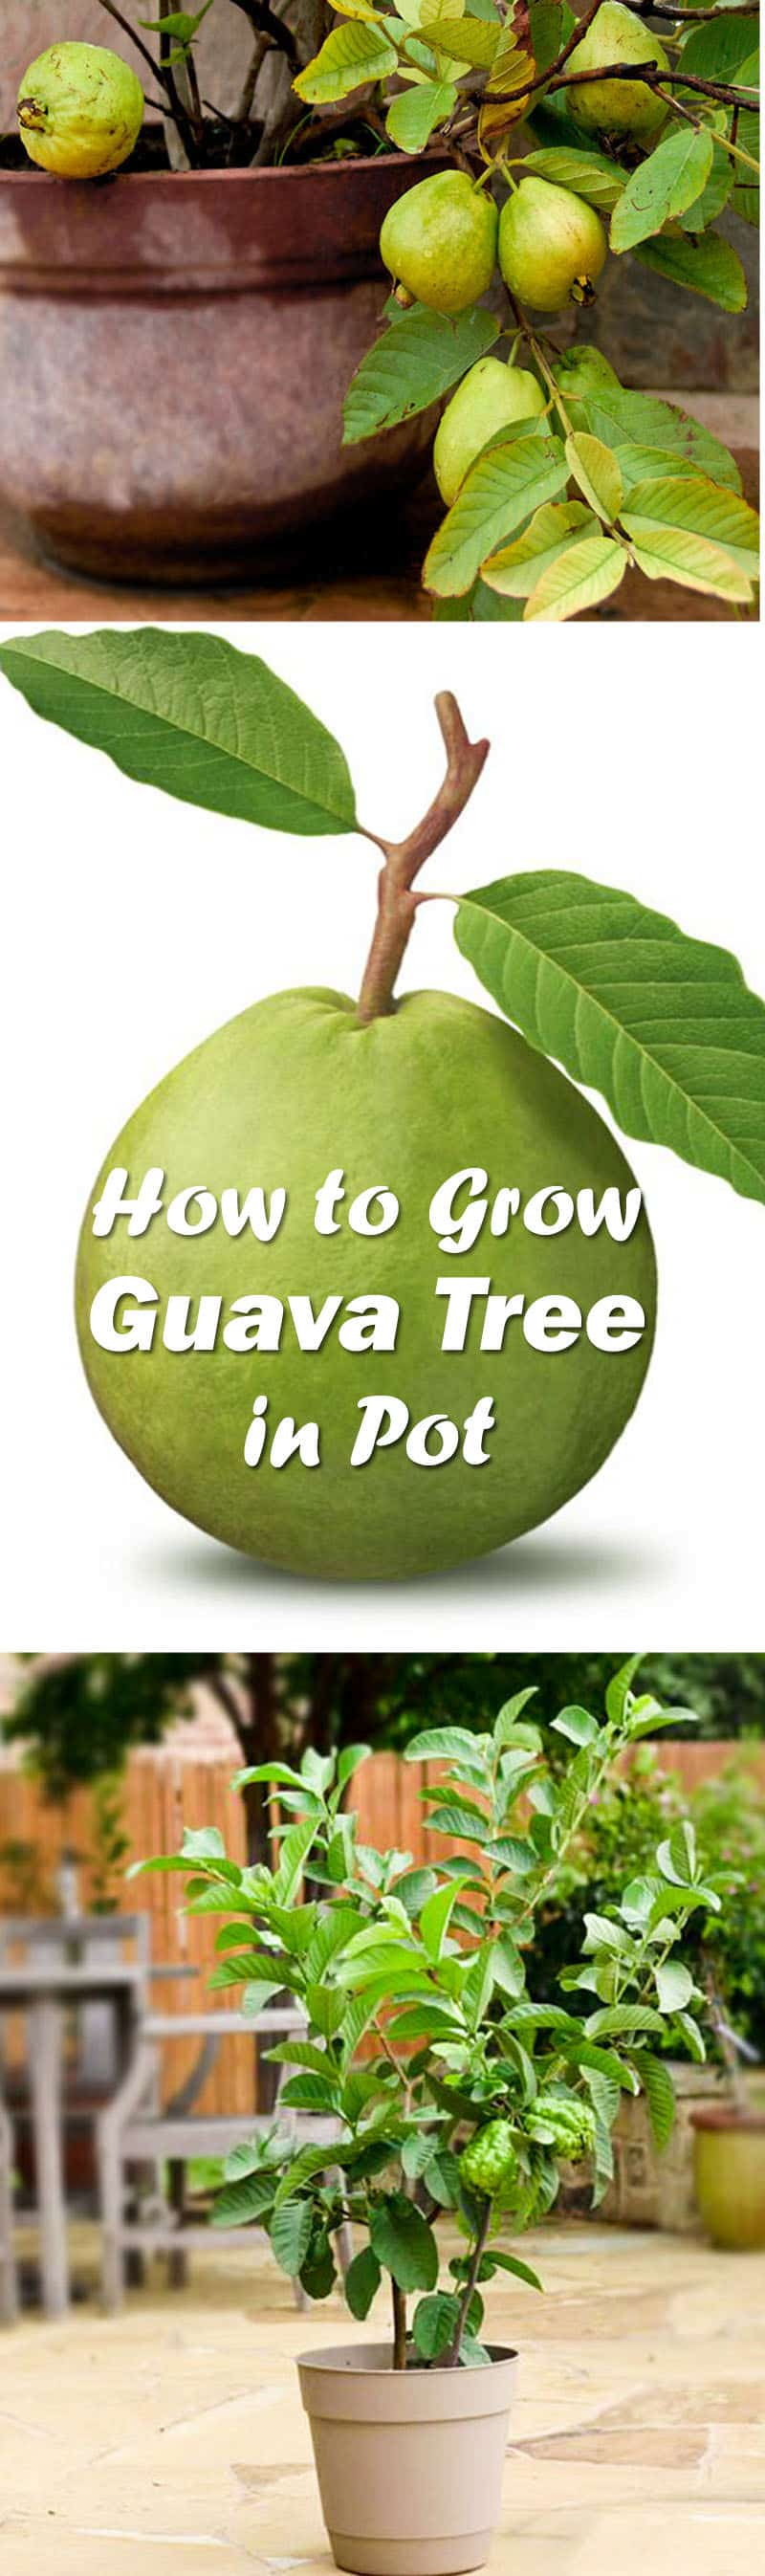 how to grow guava in pot